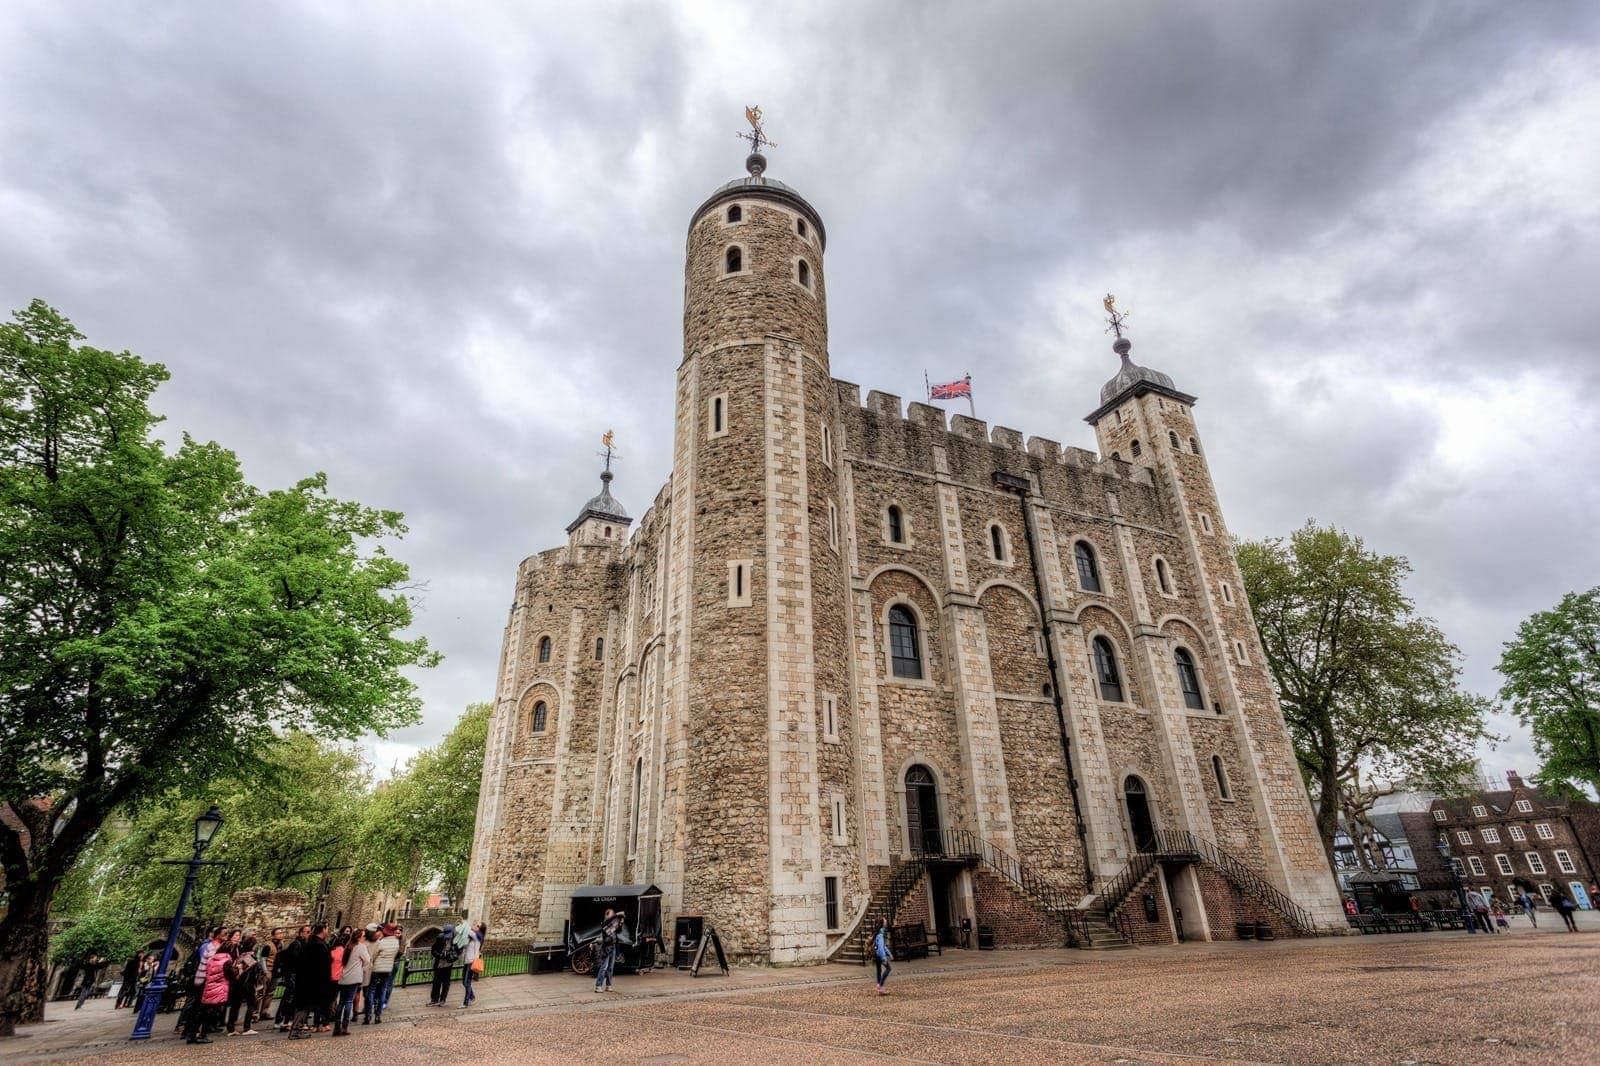 White tower in Tower of london uk